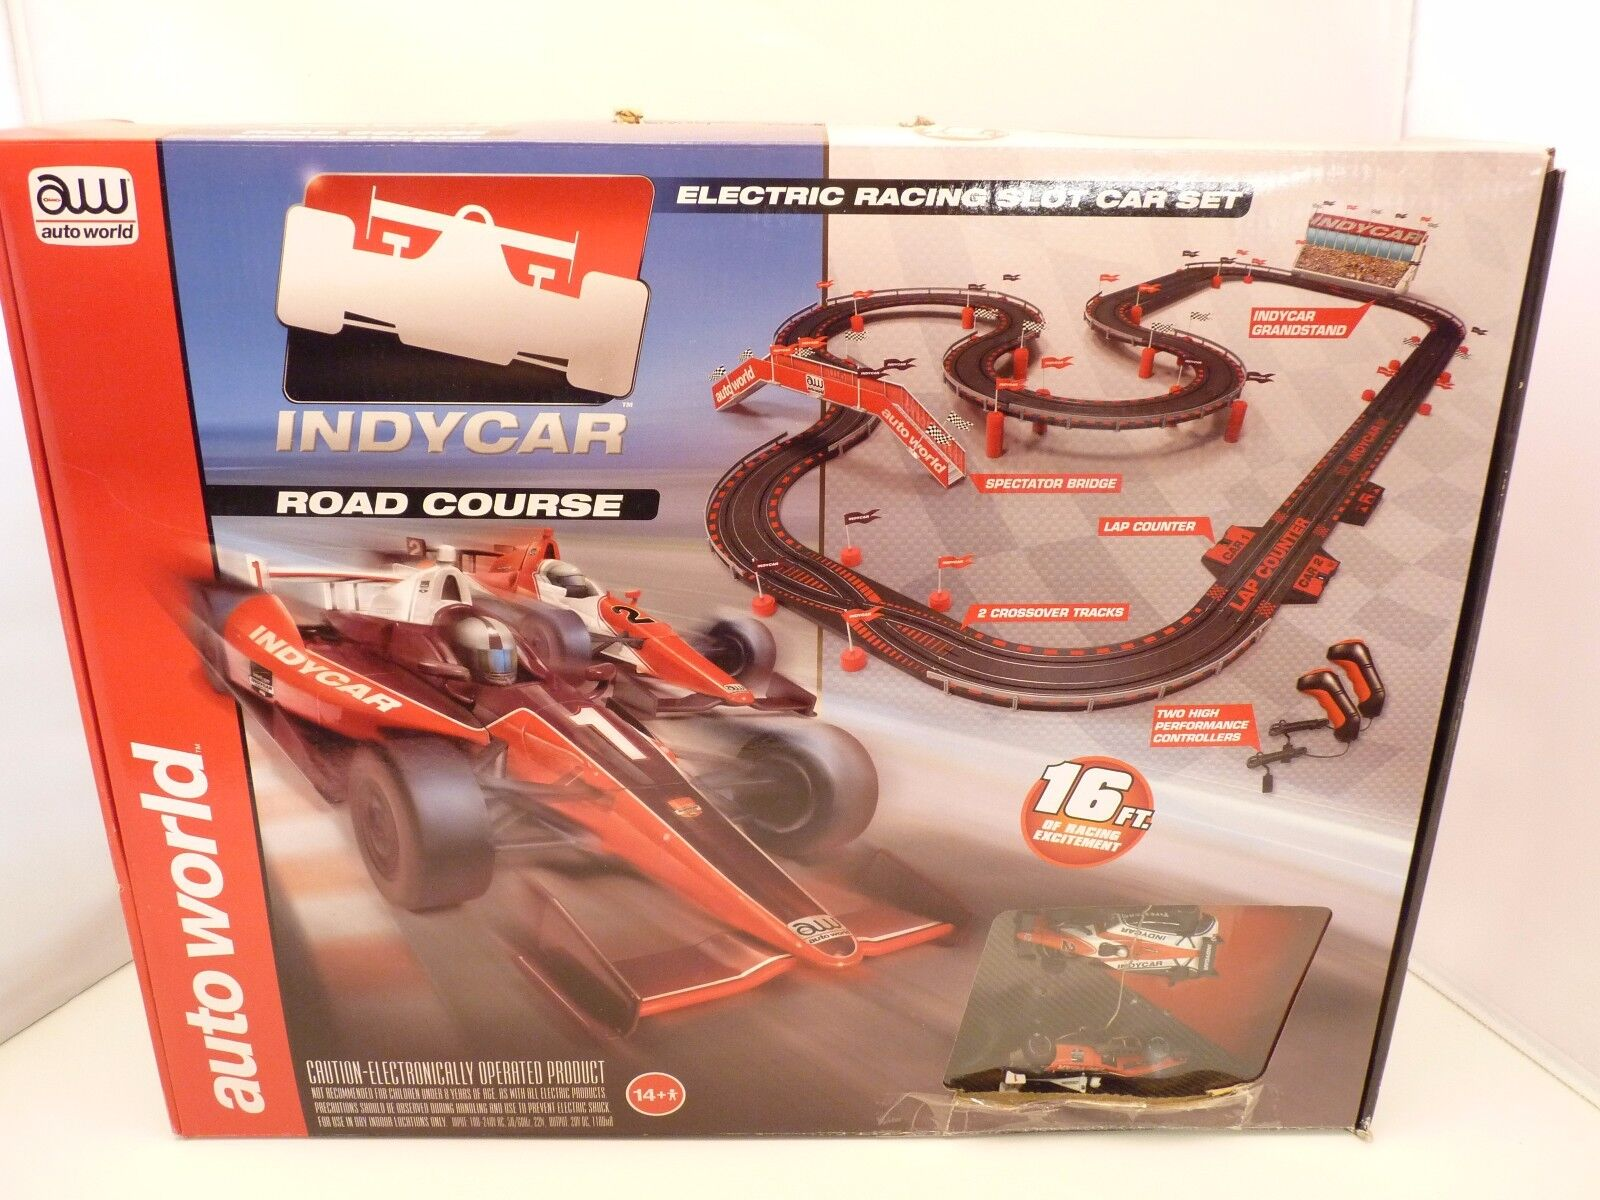 AW AUTO WORLD SRS296 16' INDY ROAD COURSE SLOT CAR RACE SET 1 EA SRS296